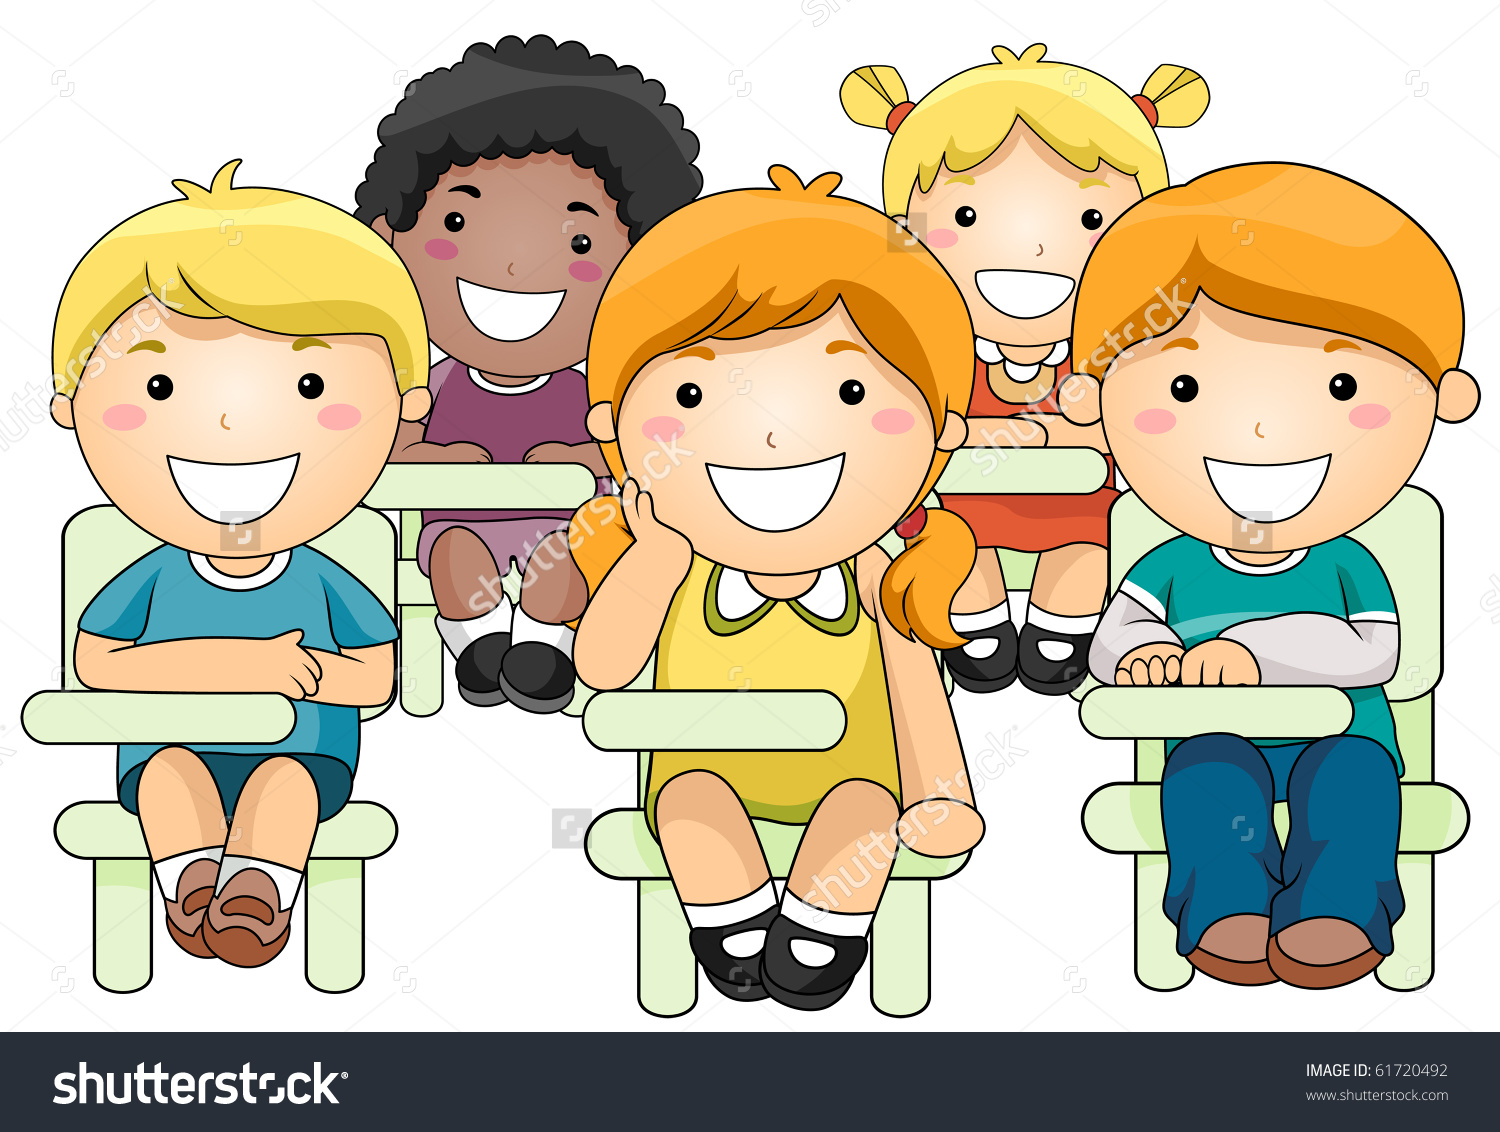 Illustration Small Group Children Inside Classroom Stock Vector.